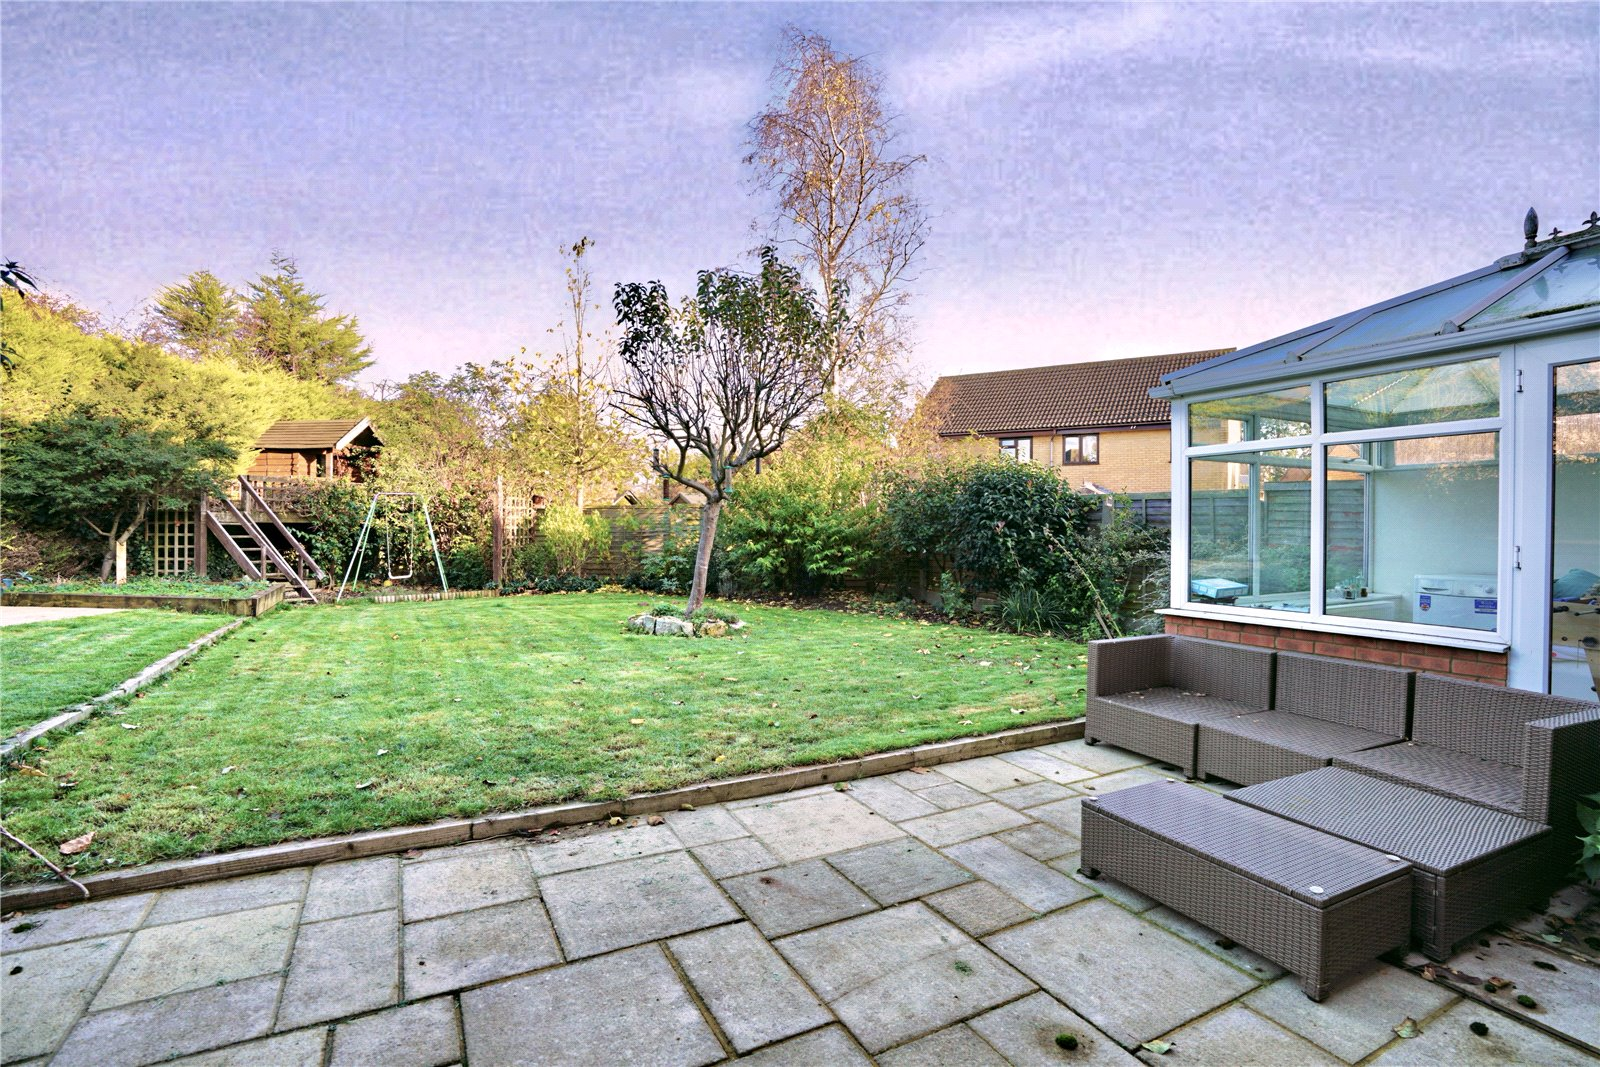 4 bed house for sale in Codrington Court, Eaton Socon 11